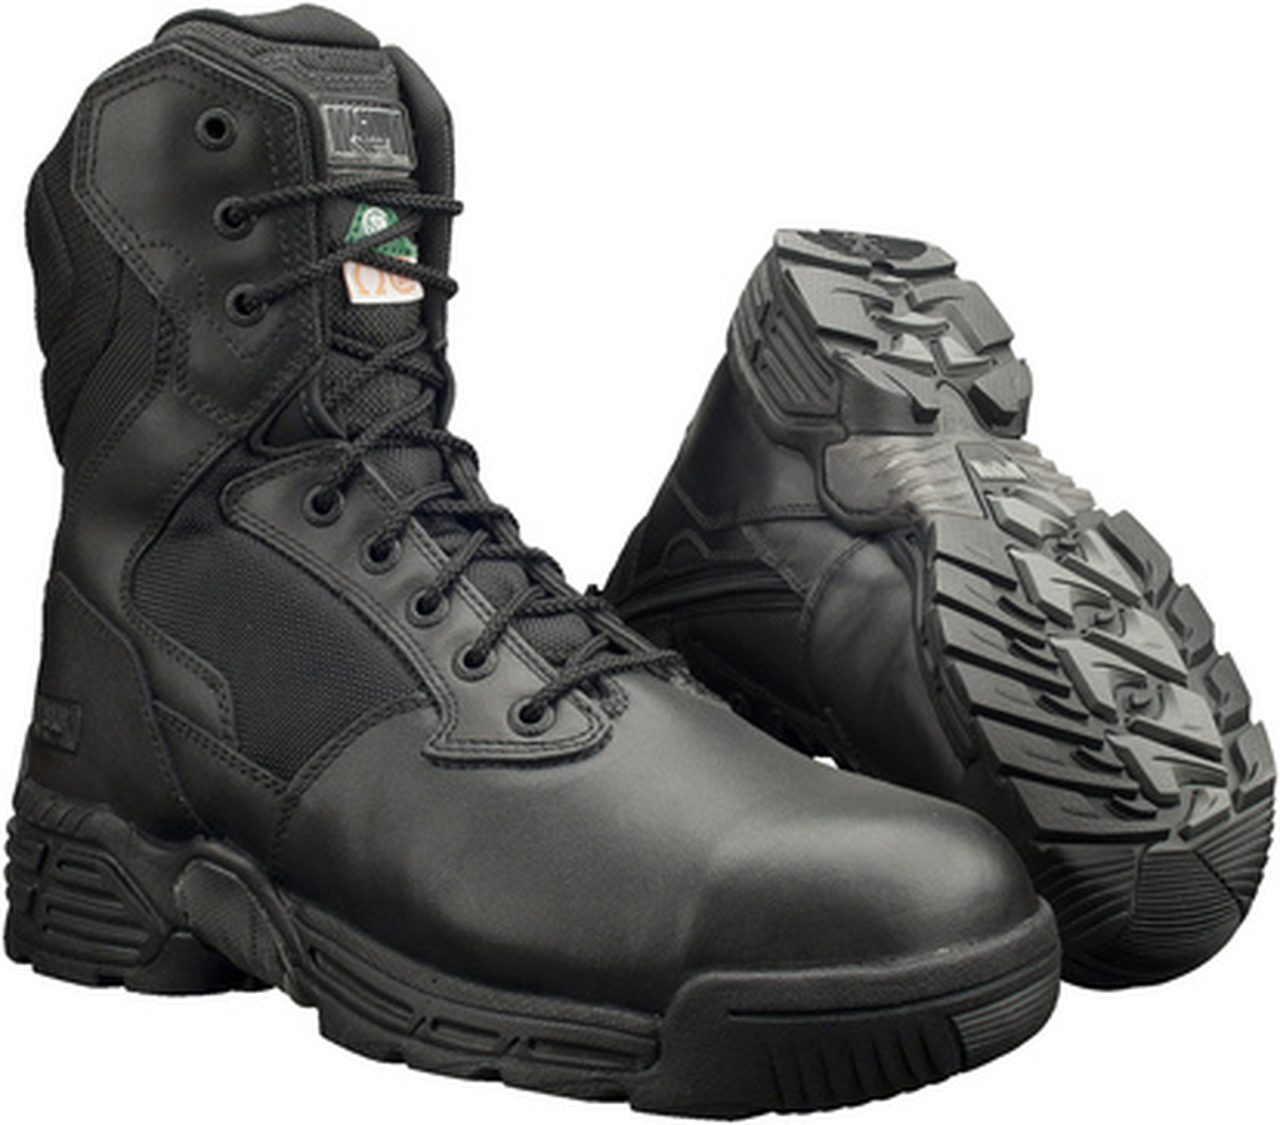 Magnum Stealth Force 8.0 Side Zip Composite Toe/Plate